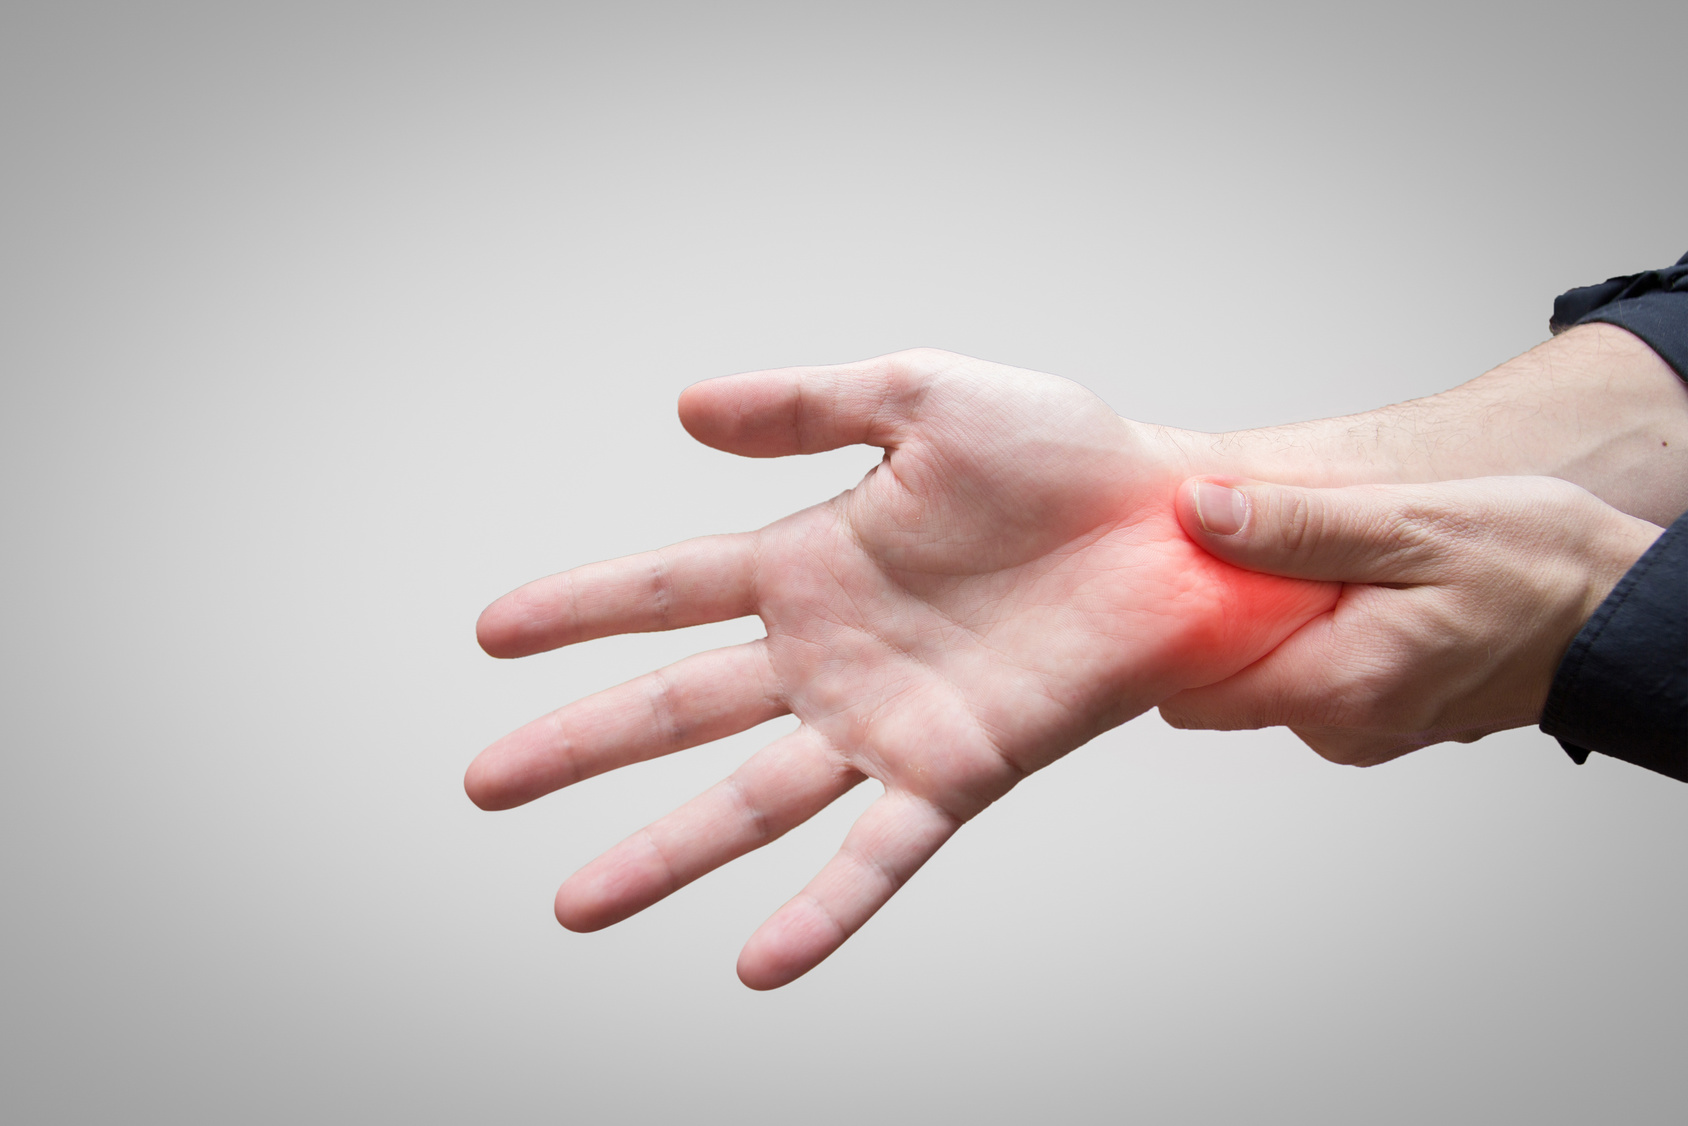 Nyeri pergelangan tangan carpal tunnel syndrome